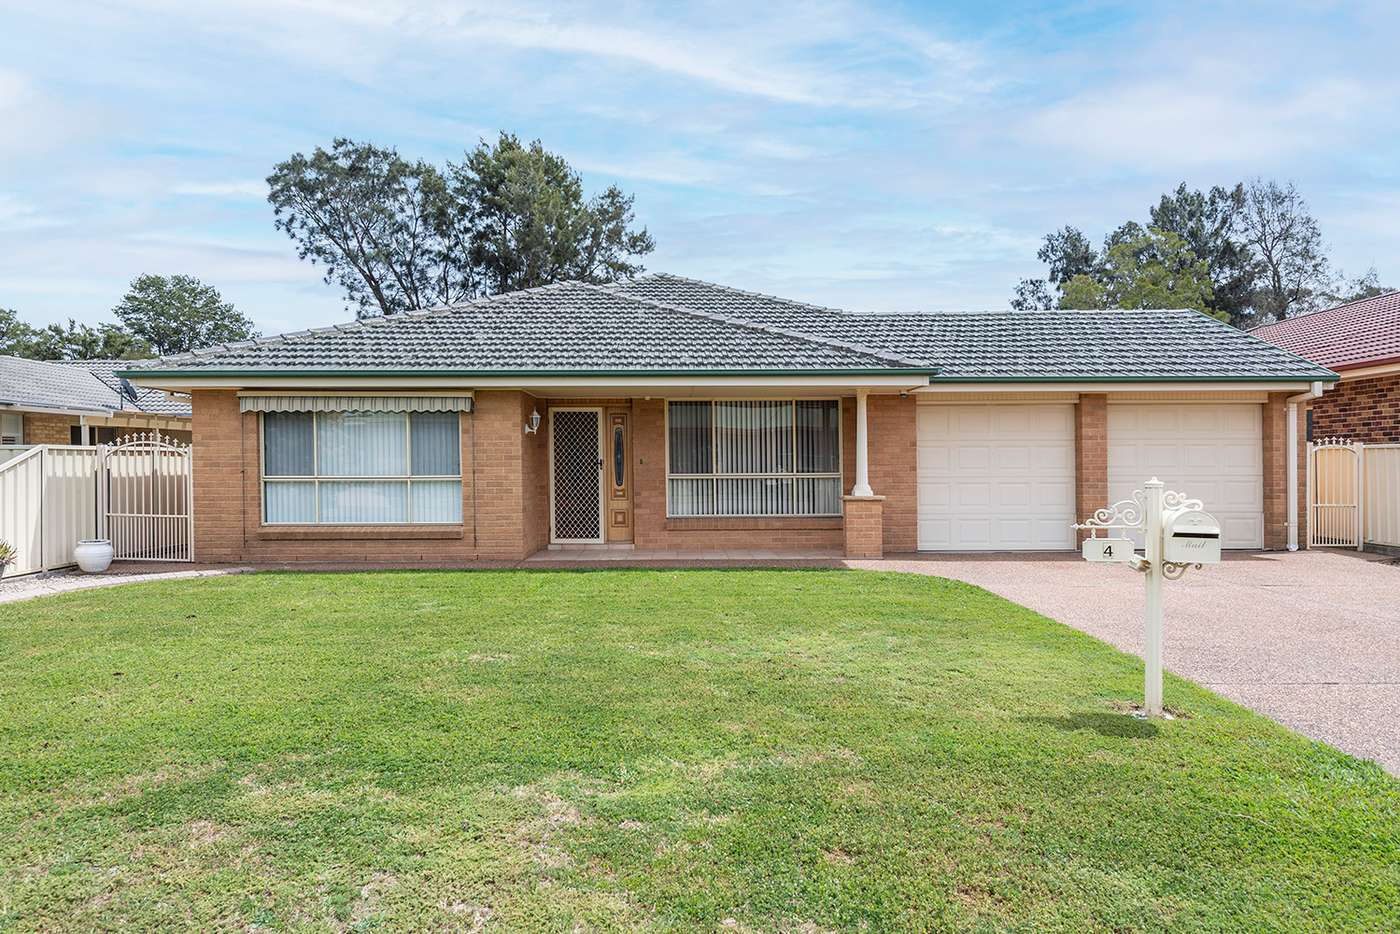 Main view of Homely house listing, 4 St Andrews Place, Muswellbrook NSW 2333